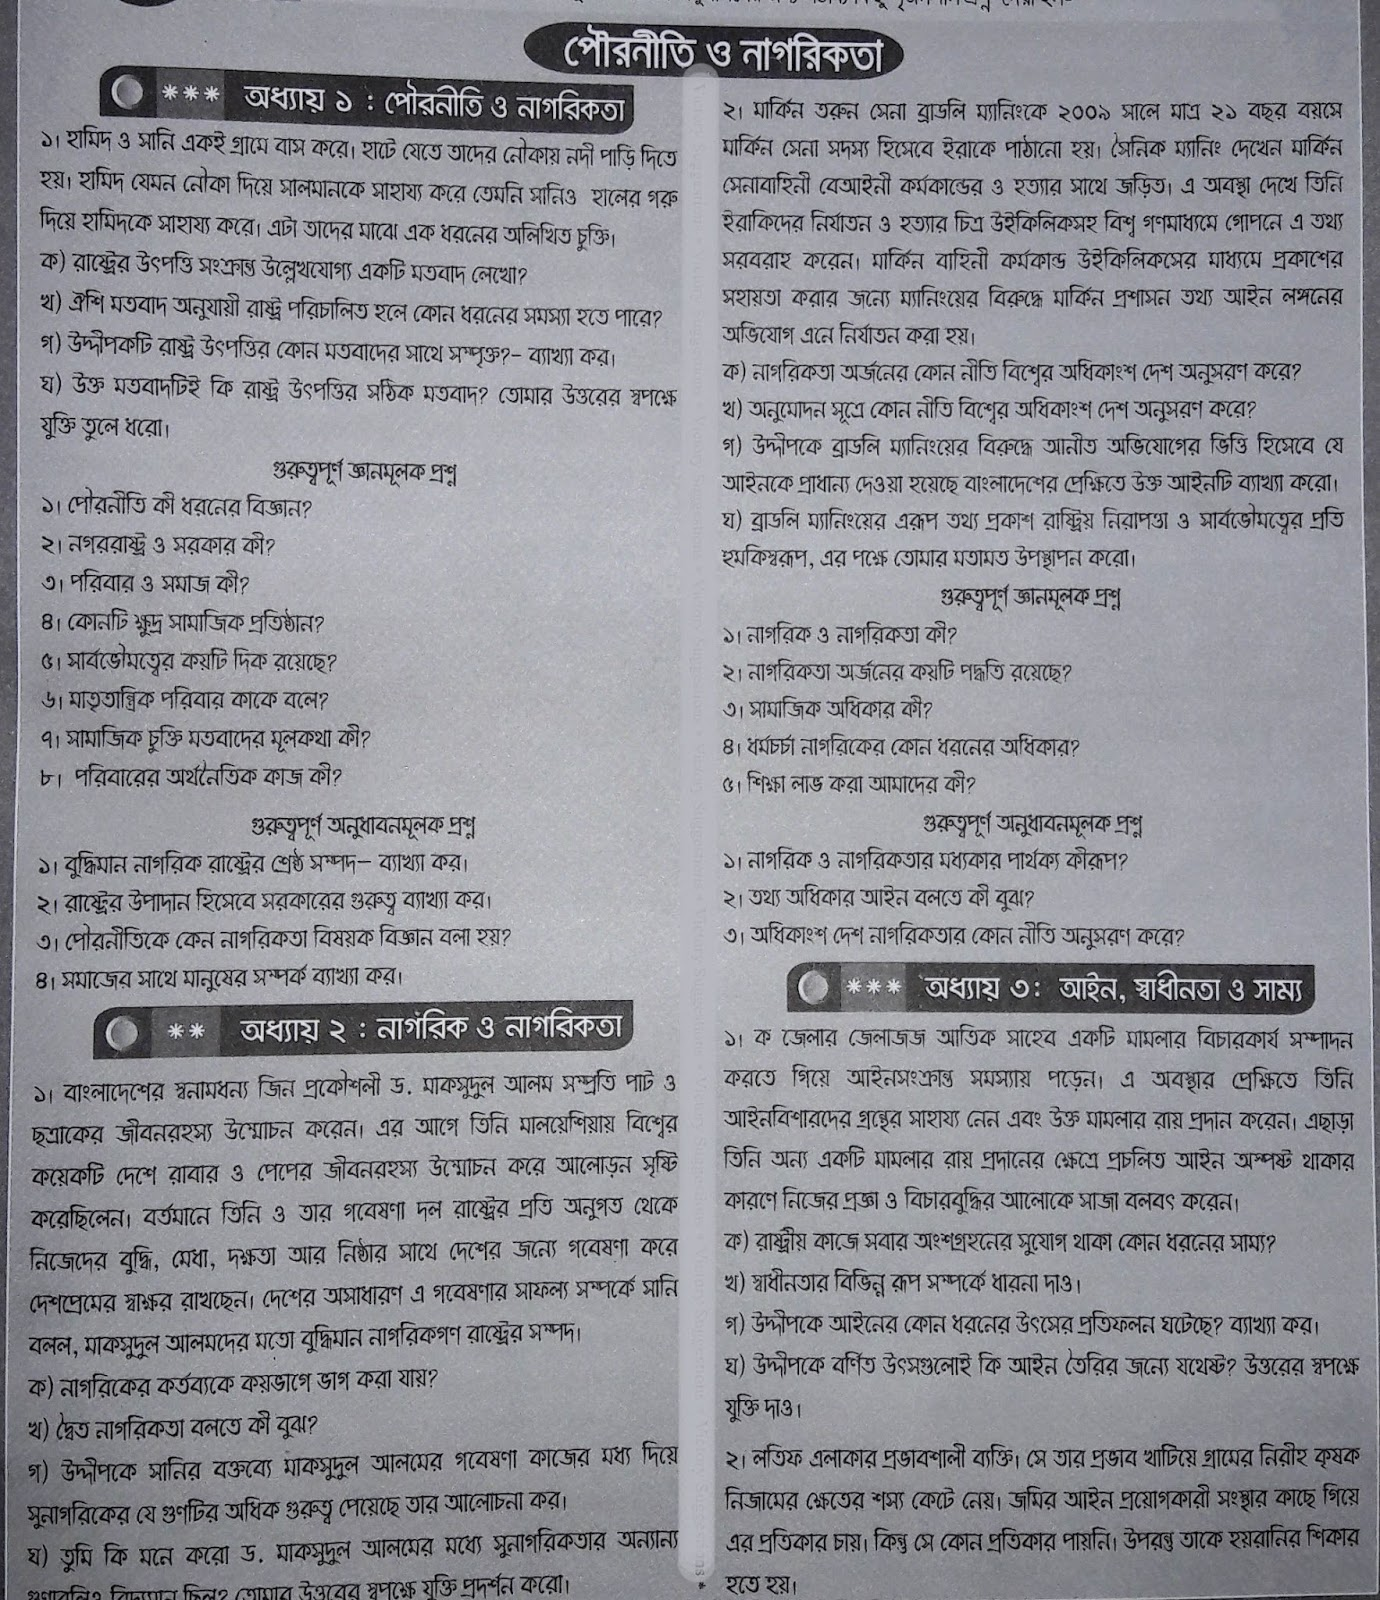 ssc Civics & Citizenship suggestion, exam question paper, model question, mcq question, question pattern, preparation for dhaka board, all boards